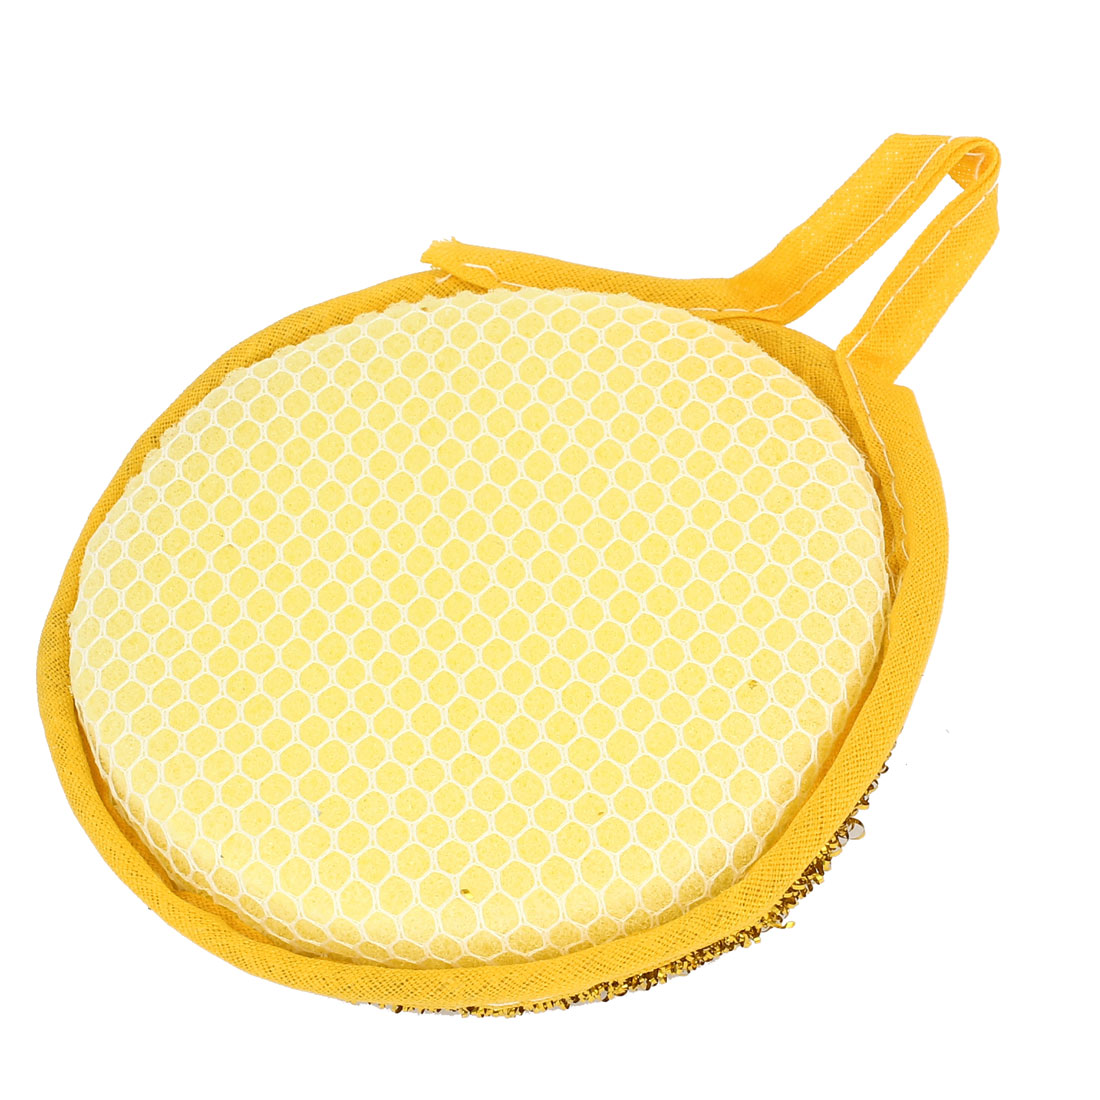 Yellow Gold Tone Sponge Bowl Dish Scrubber Cleaning Pad for Kitchen